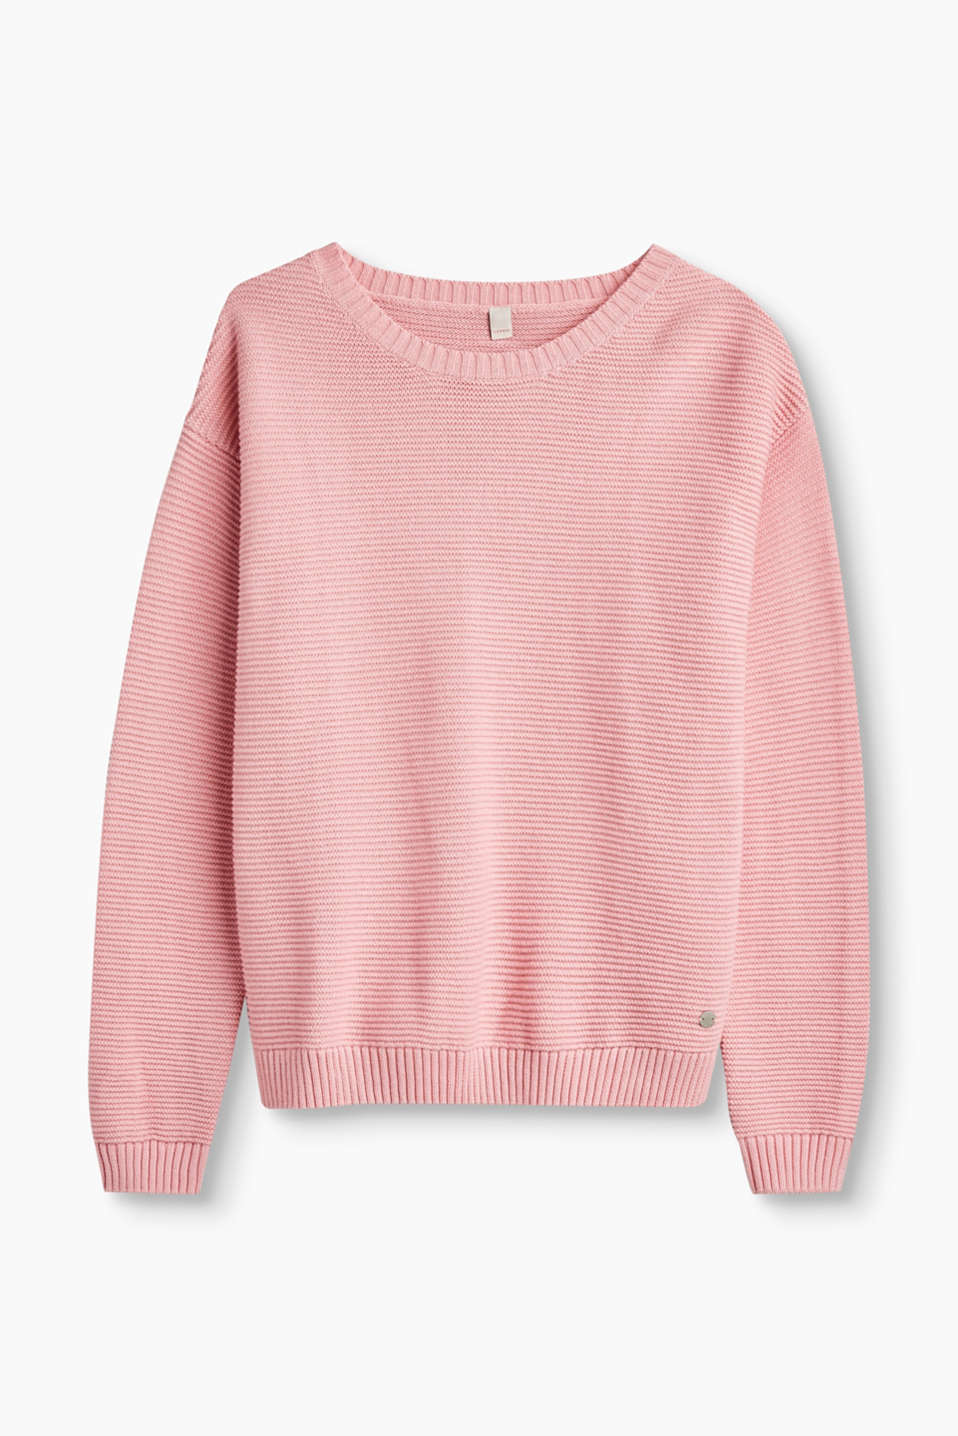 We love knitwear! This jumper impresses with its cool textured knit and pure, striking colour.